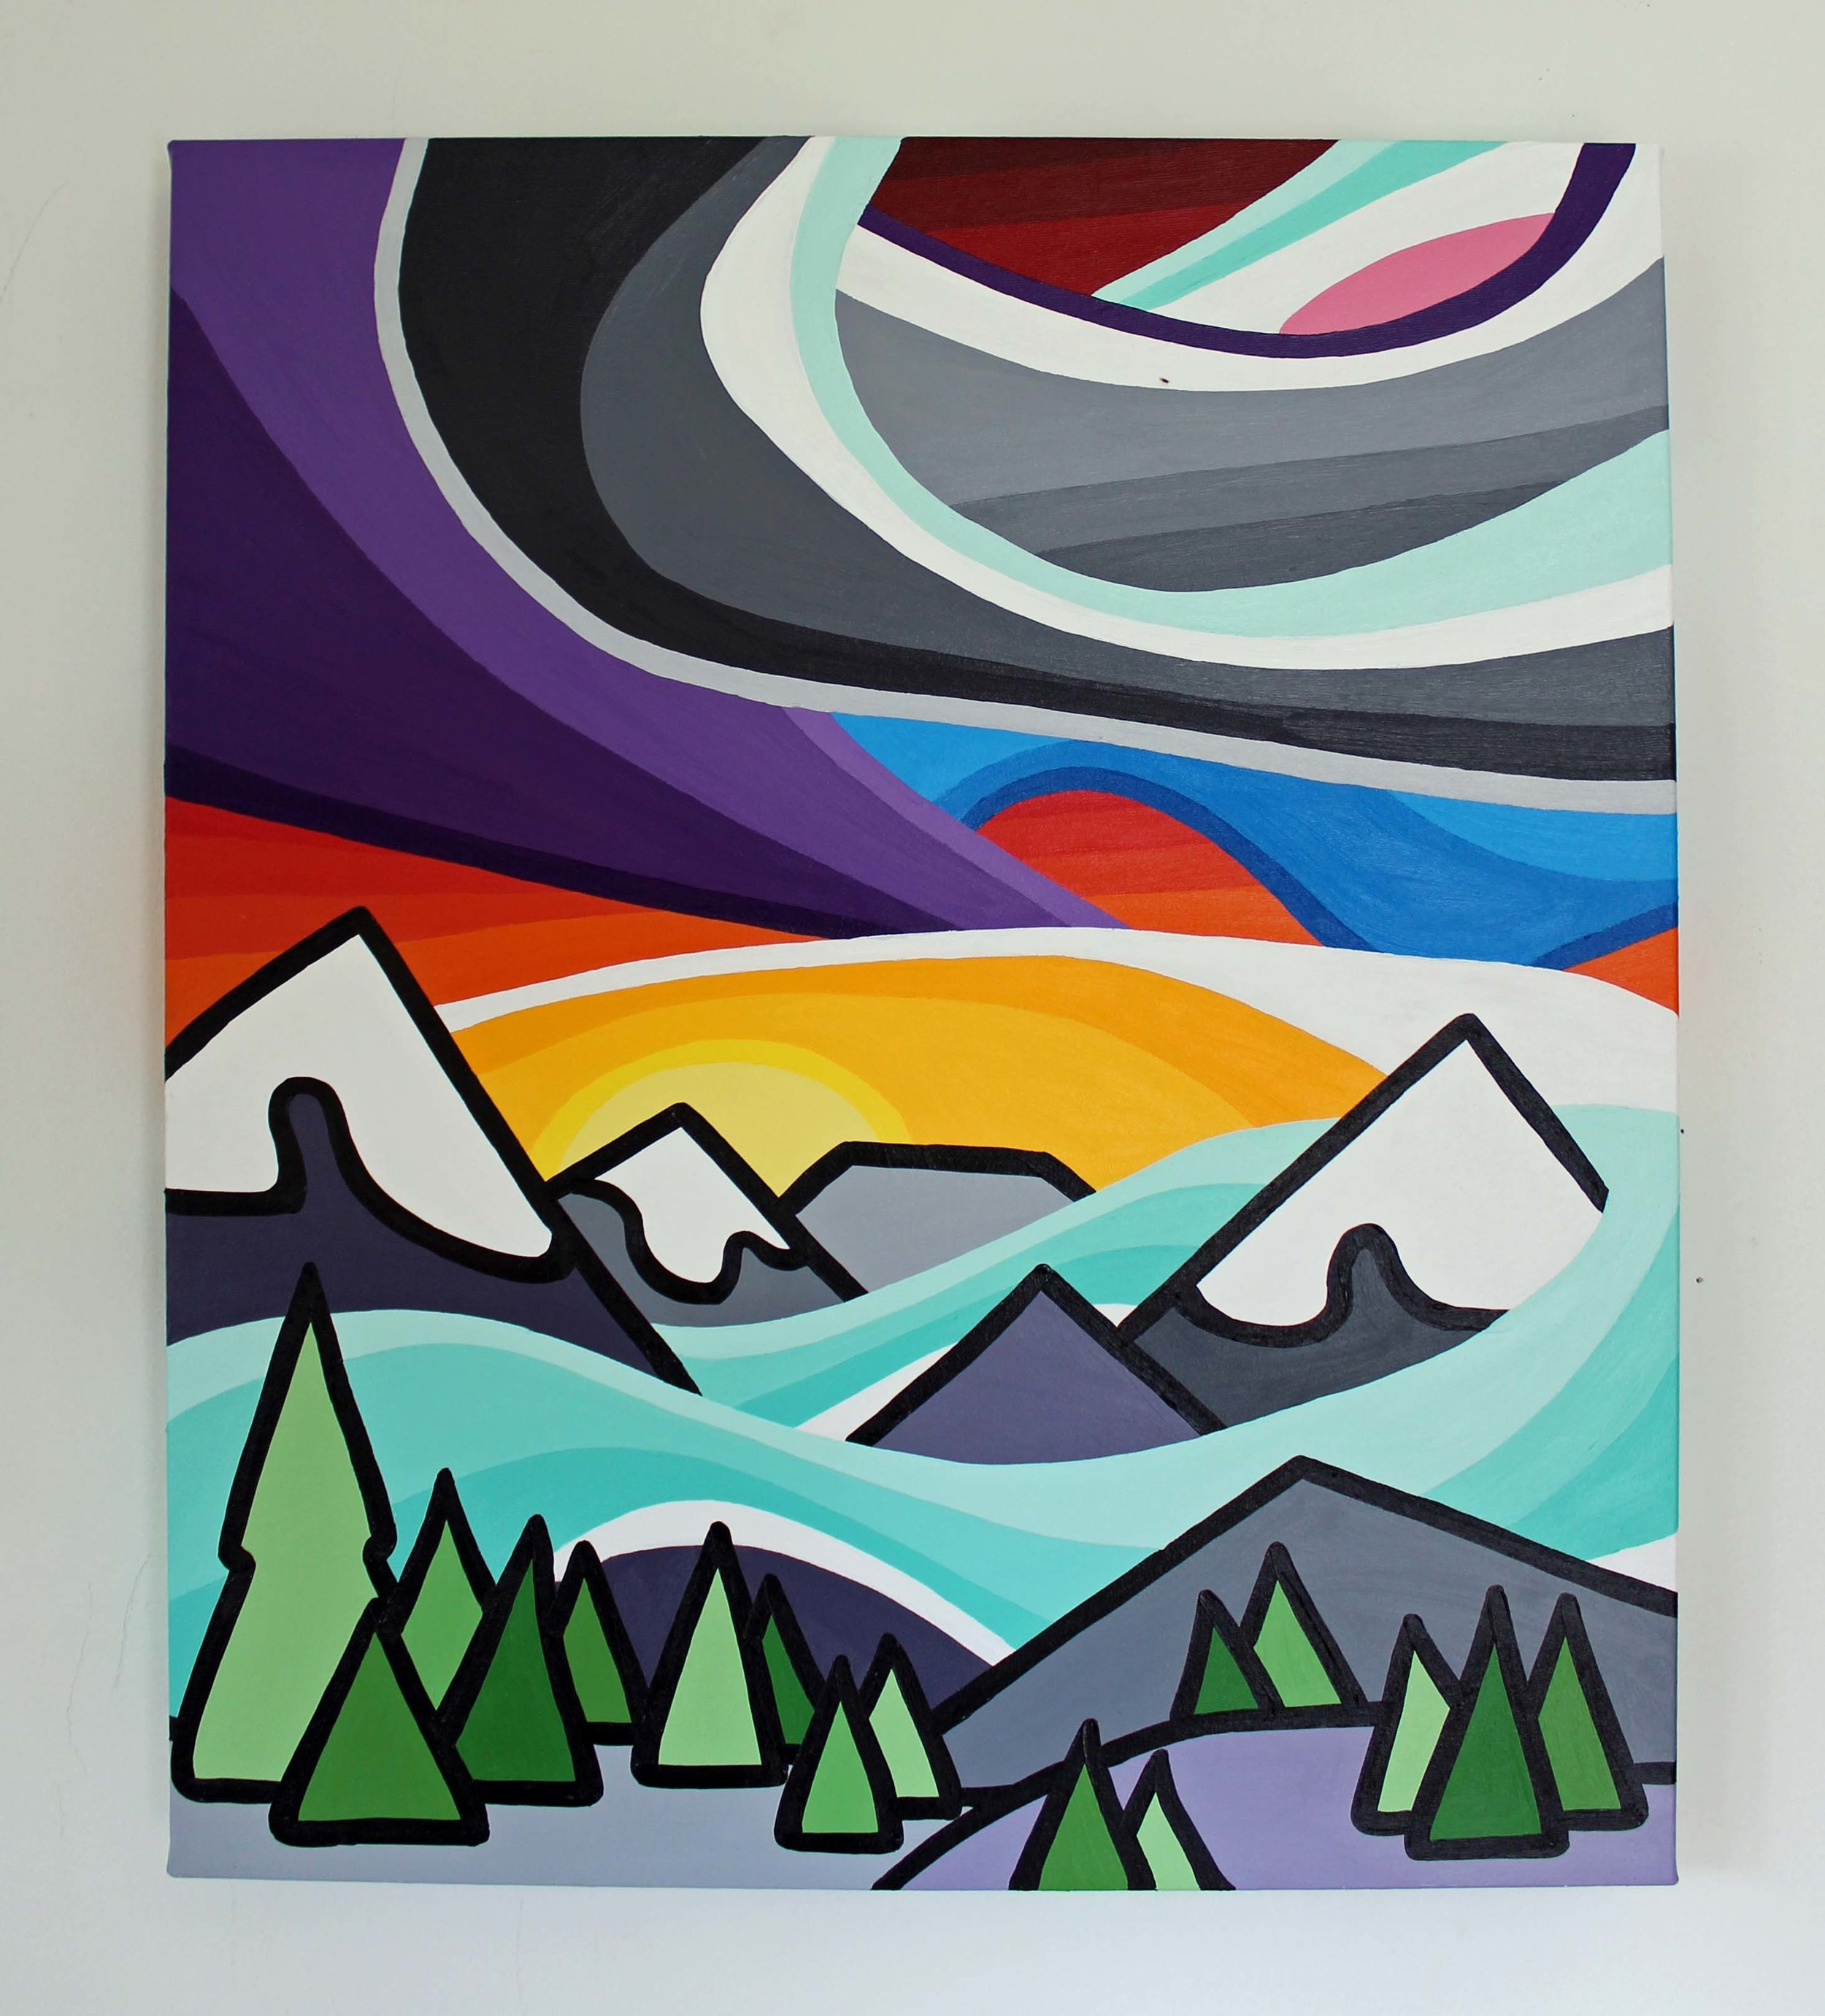 "Let's Go to the Mountains - Size: 24"" x 20"" acrylic on canvasPrice: SOLD"